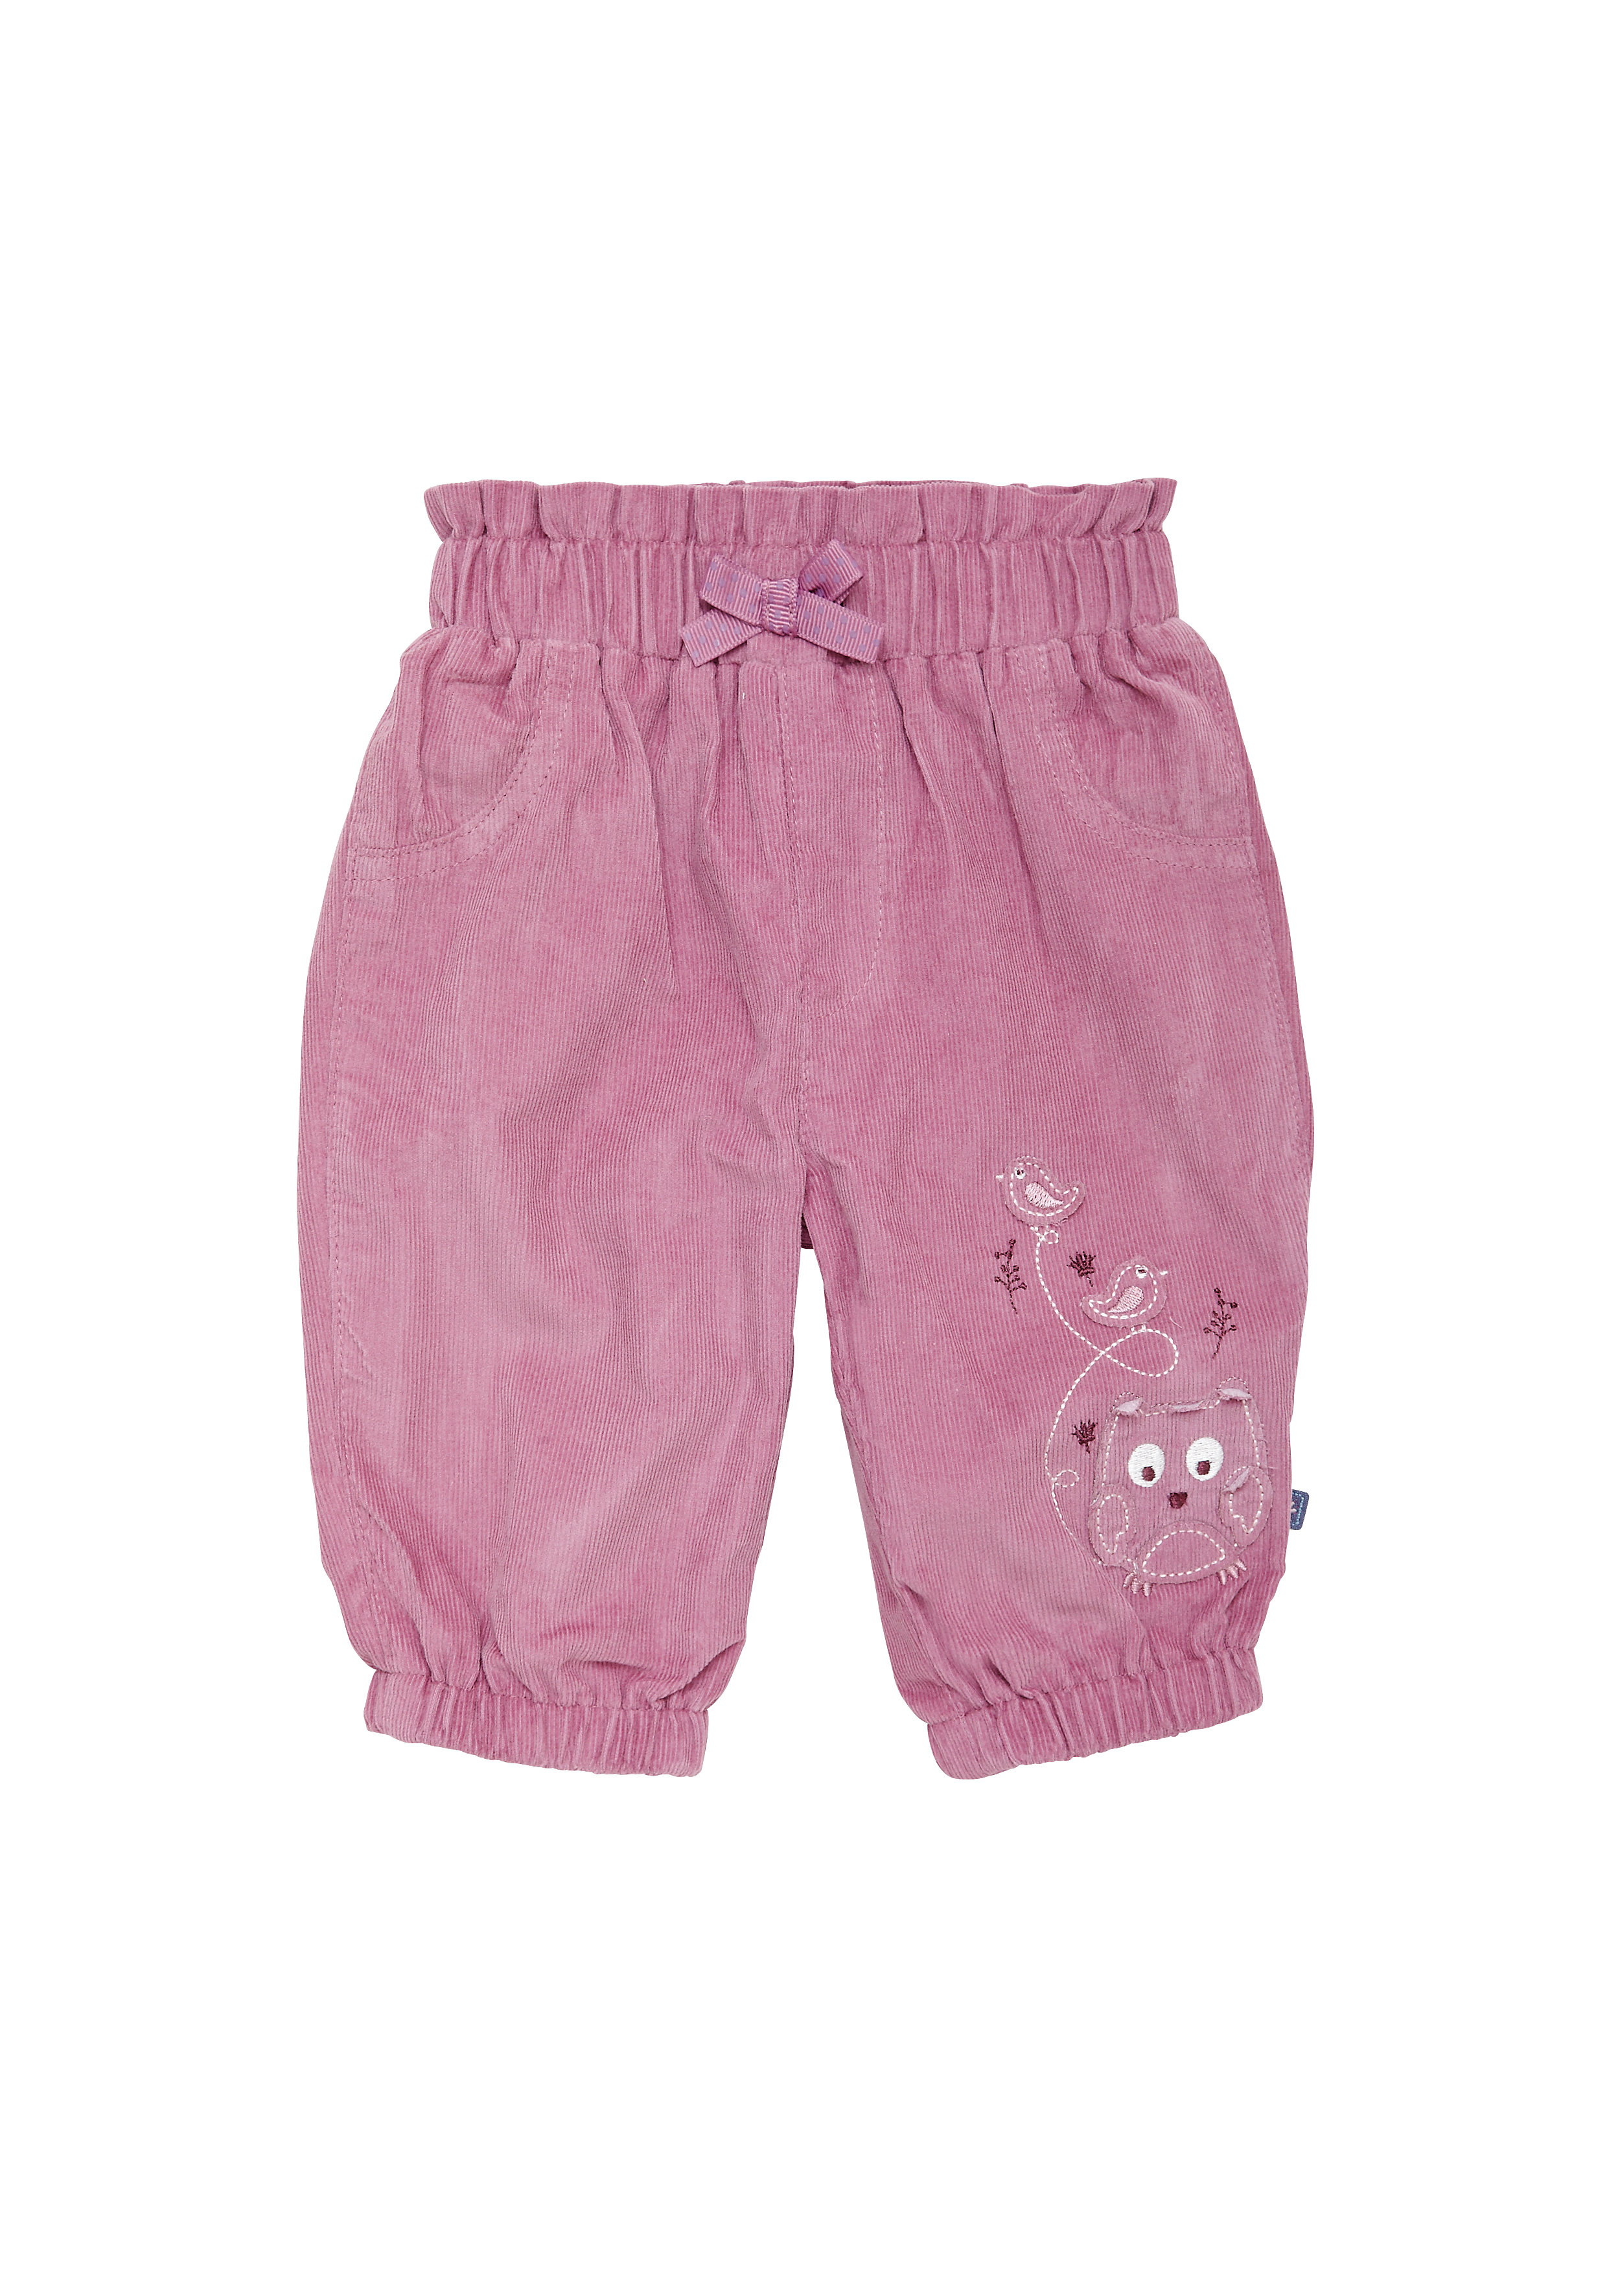 Mothercare | Girls Cord Trousers Embroidered - Pink